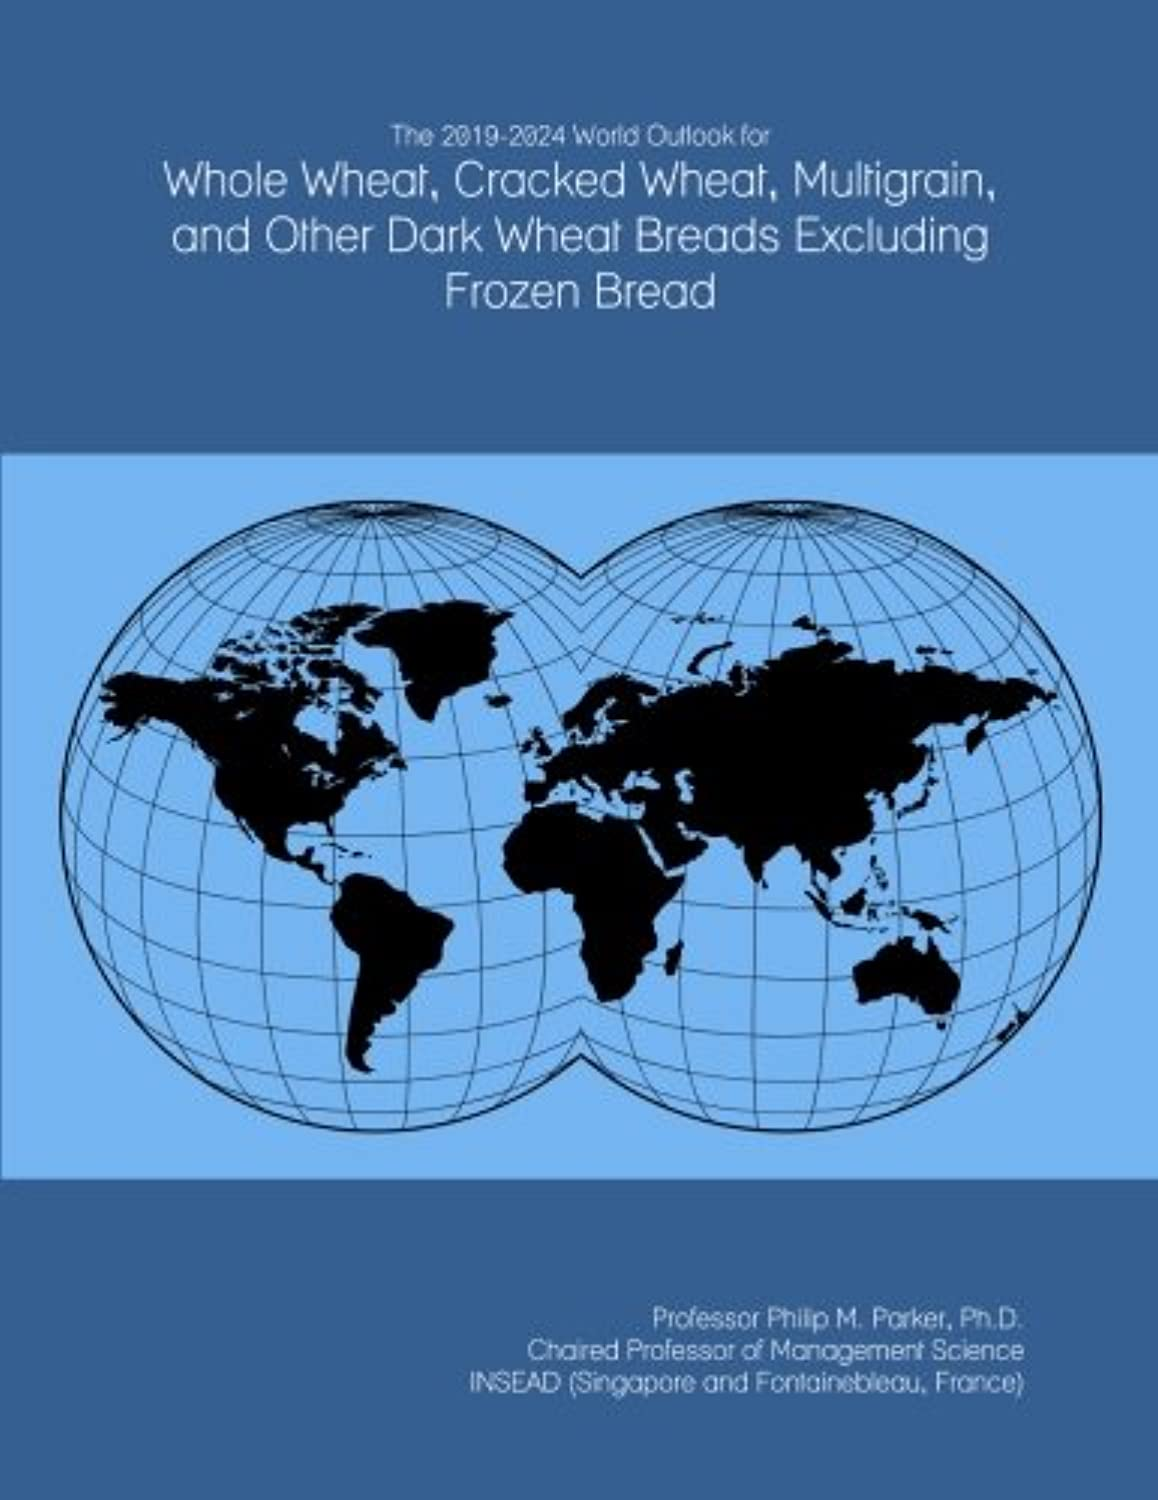 The 2019-2024 World Outlook for Whole Wheat, Cracked Wheat, Multigrain, and Other Dark Wheat Breads Excluding Frozen Bread